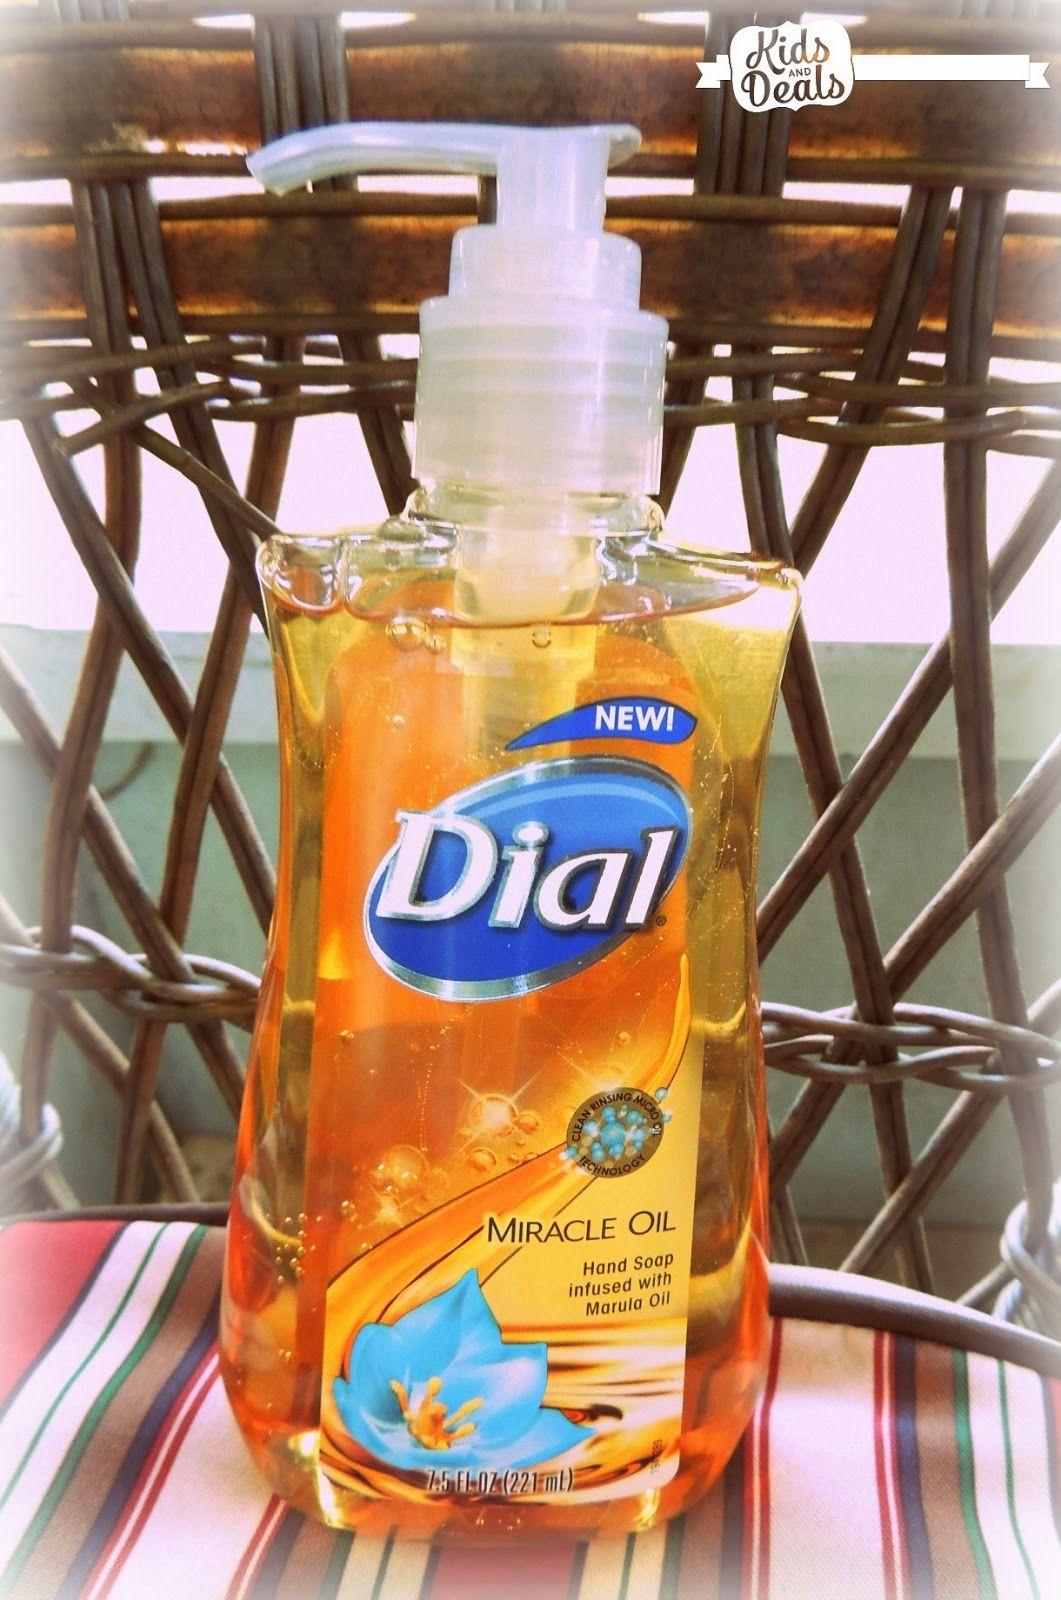 Dial miracle oil hand soap review giveaway soap hand